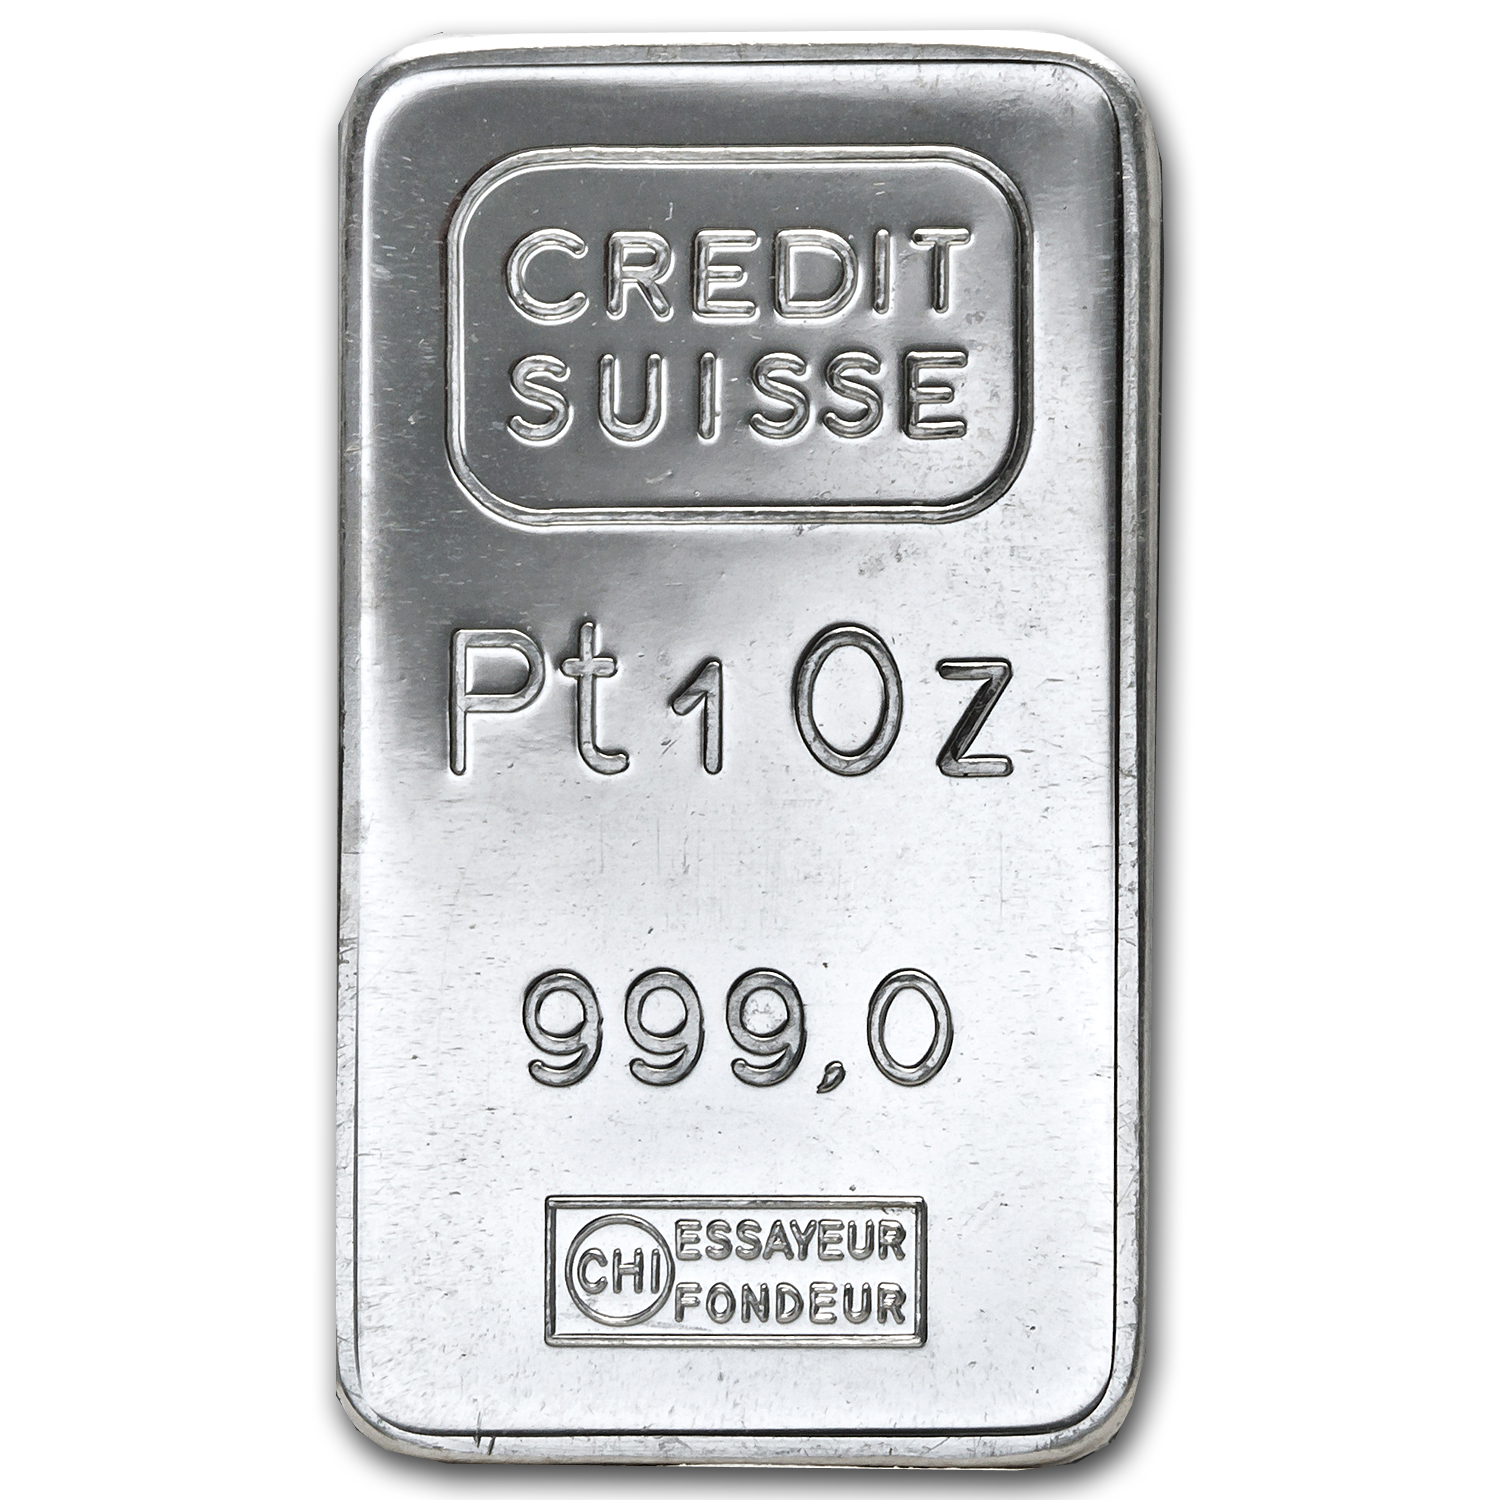 1 oz Platinum Bar - Credit Suisse (.999 Fine, Vintage)